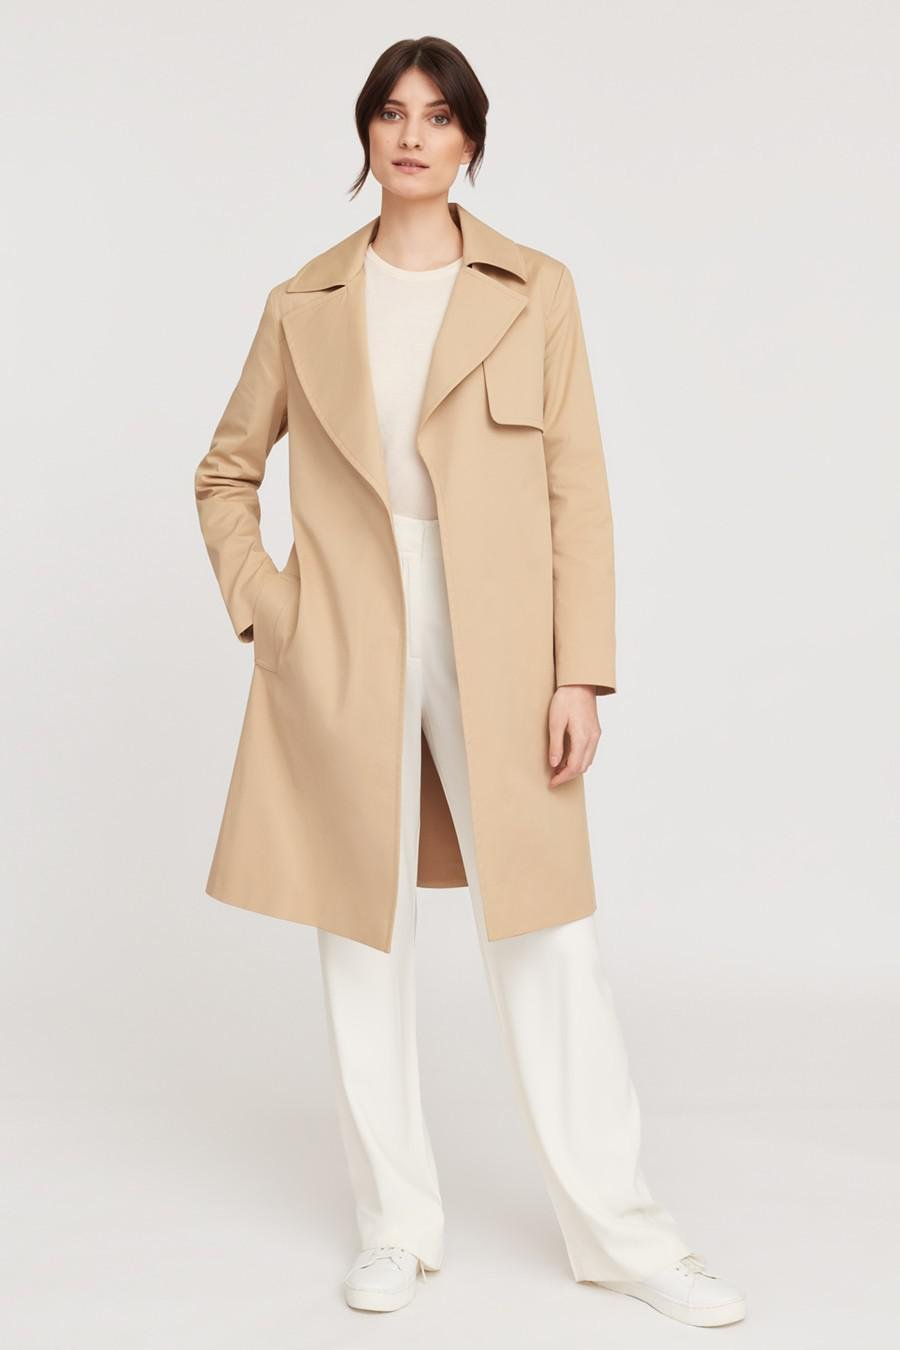 Women's Classic Trench in Wheat | Size: 2